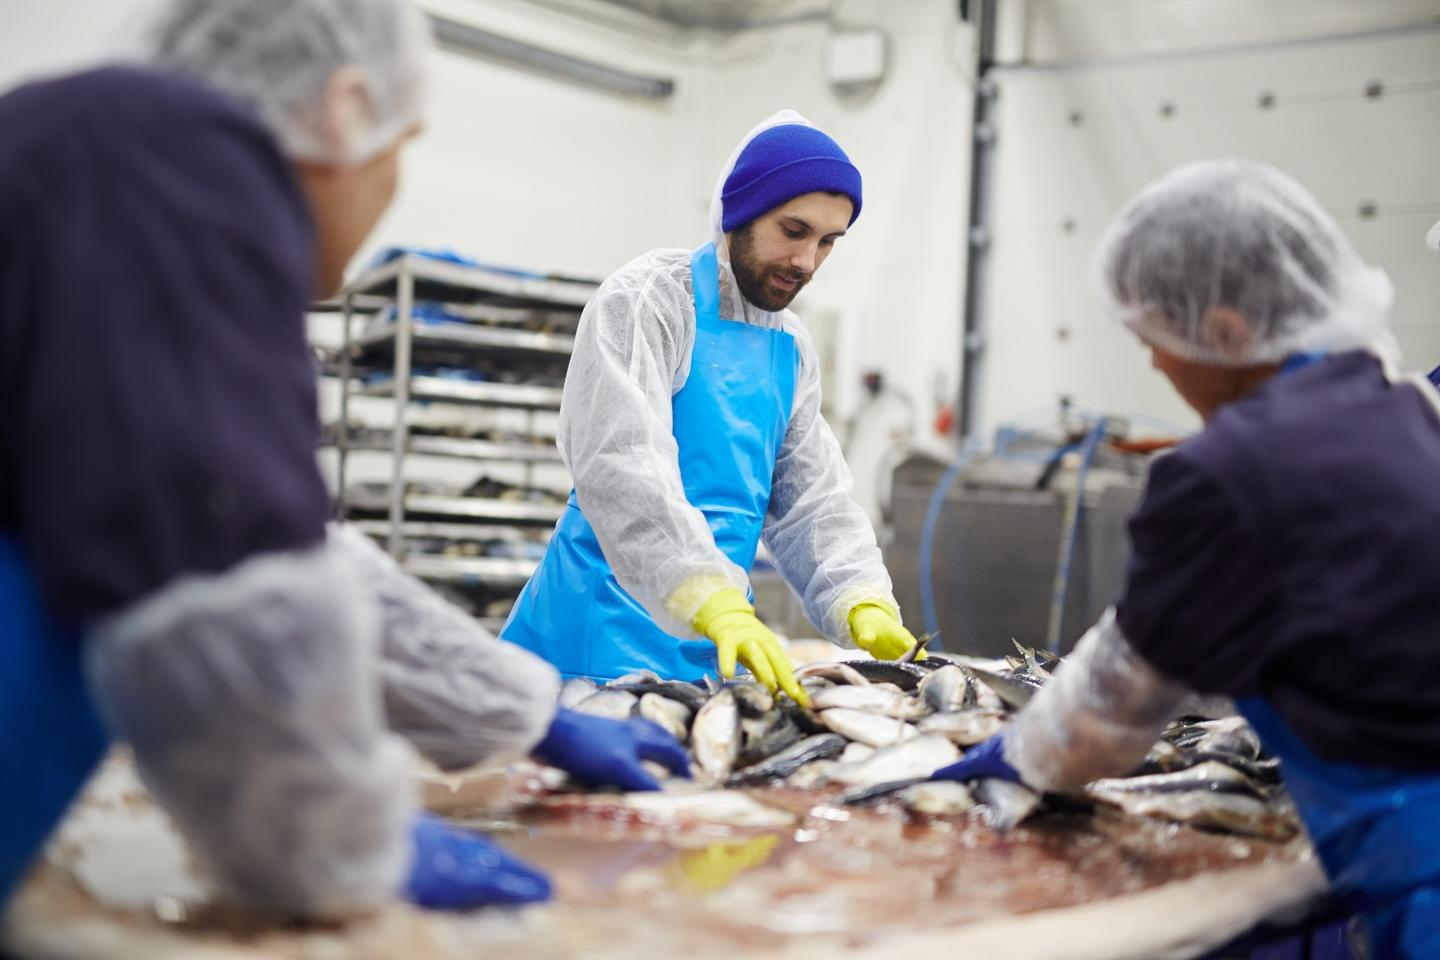 The new process could be an extra source of revenue for seafood-processing companies